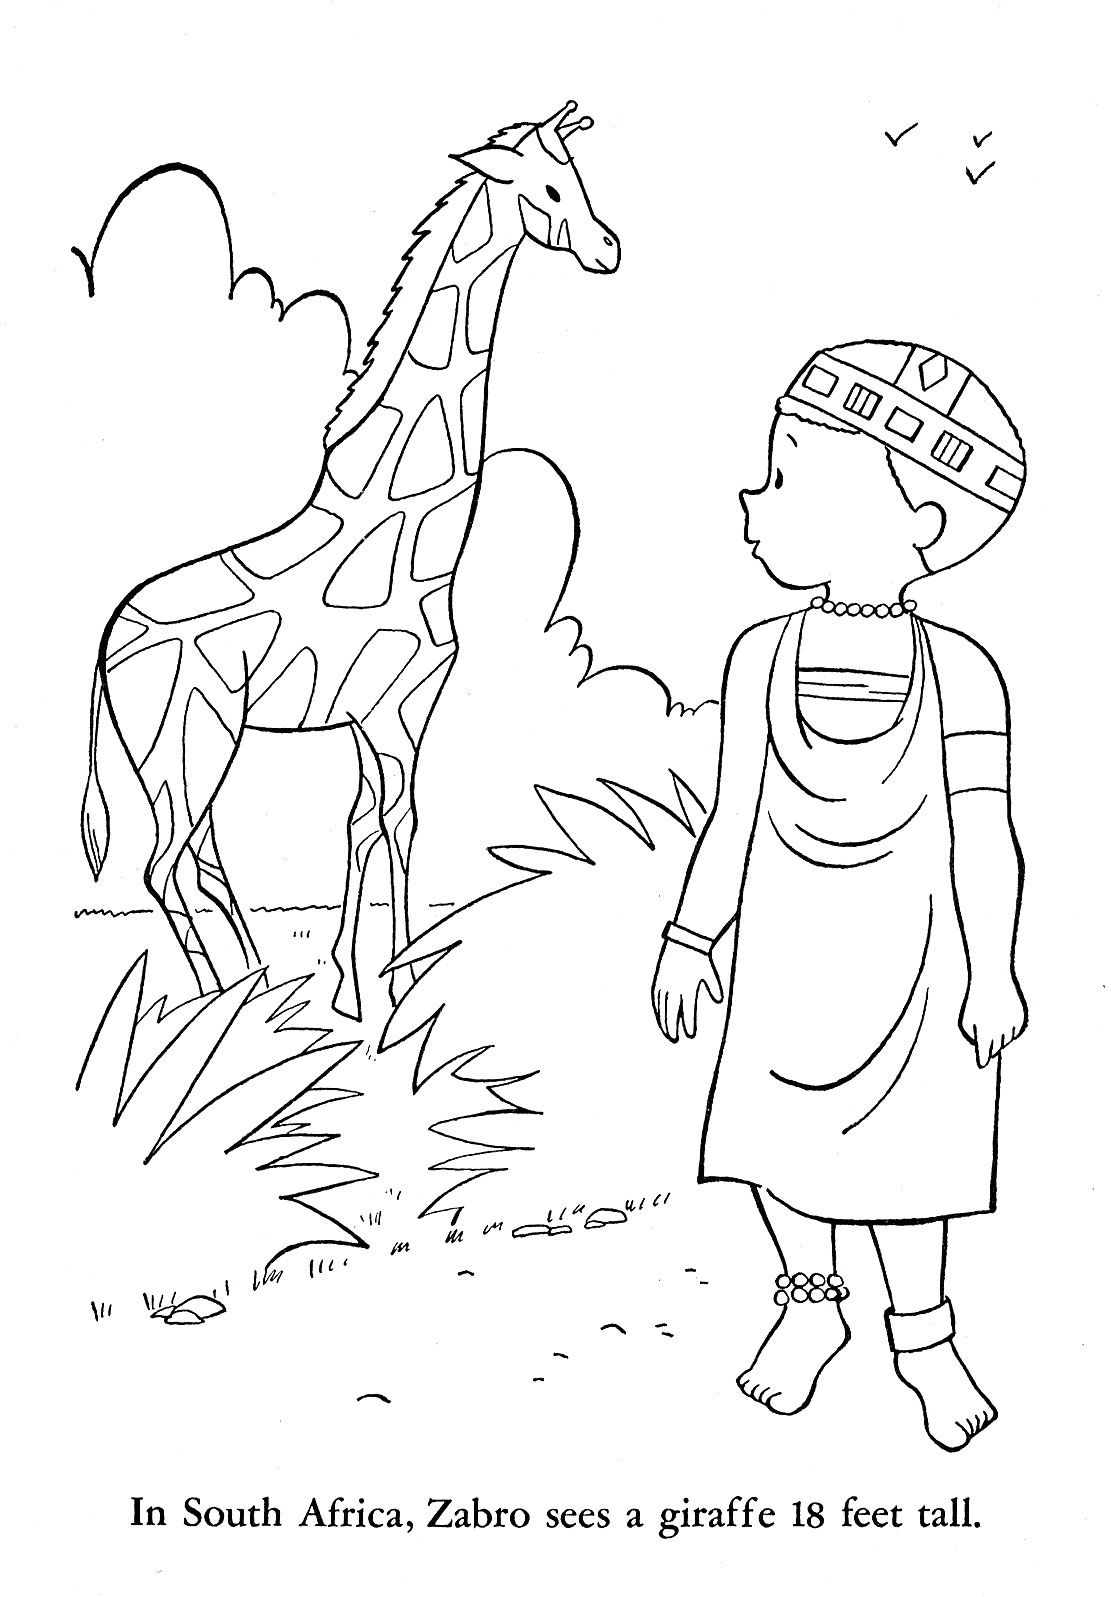 coloring pages for african animals - photo#25